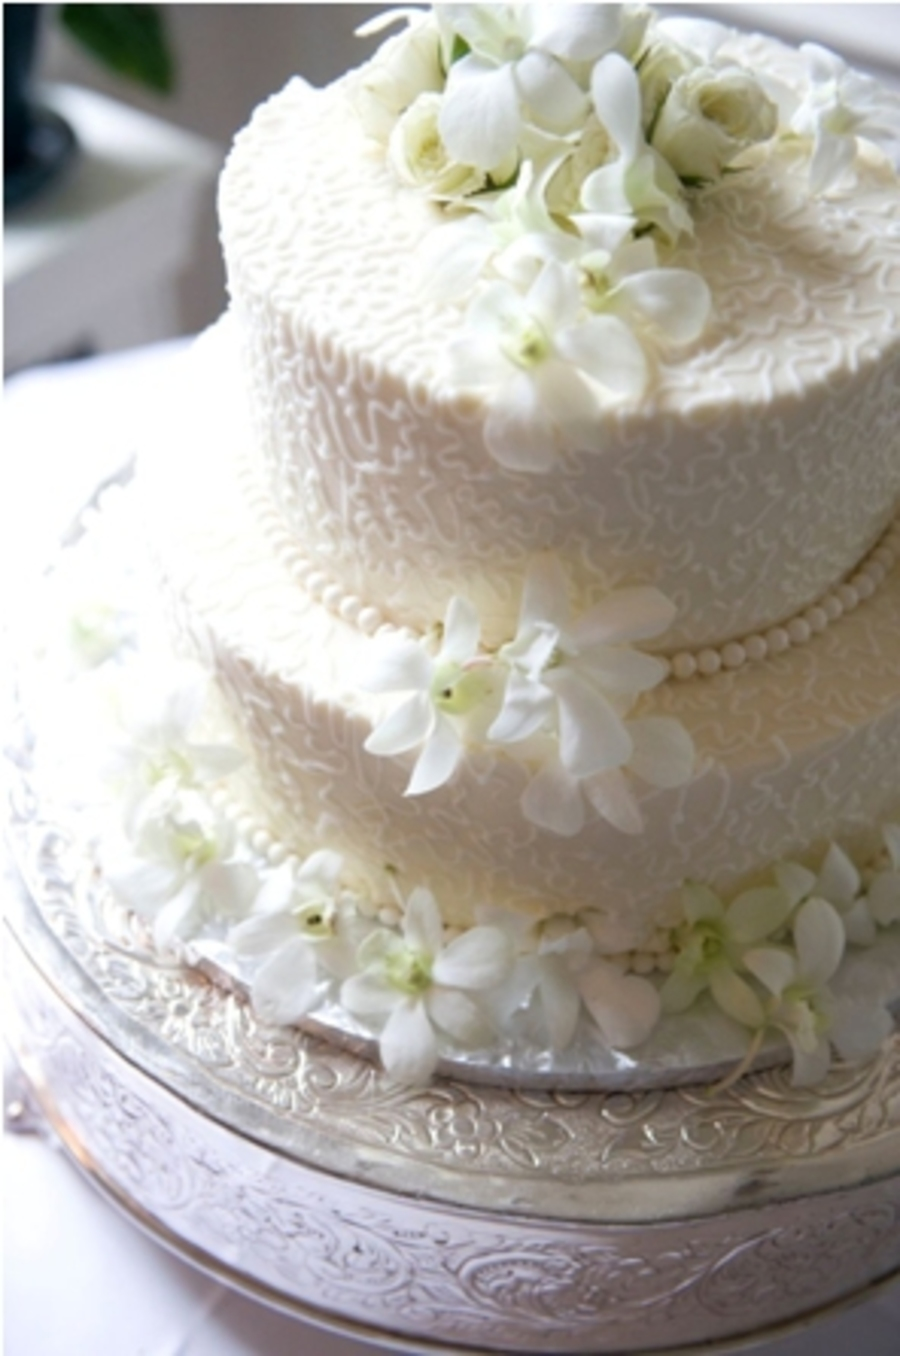 Cornelli Lace With Fresh Flowers - CakeCentral.com